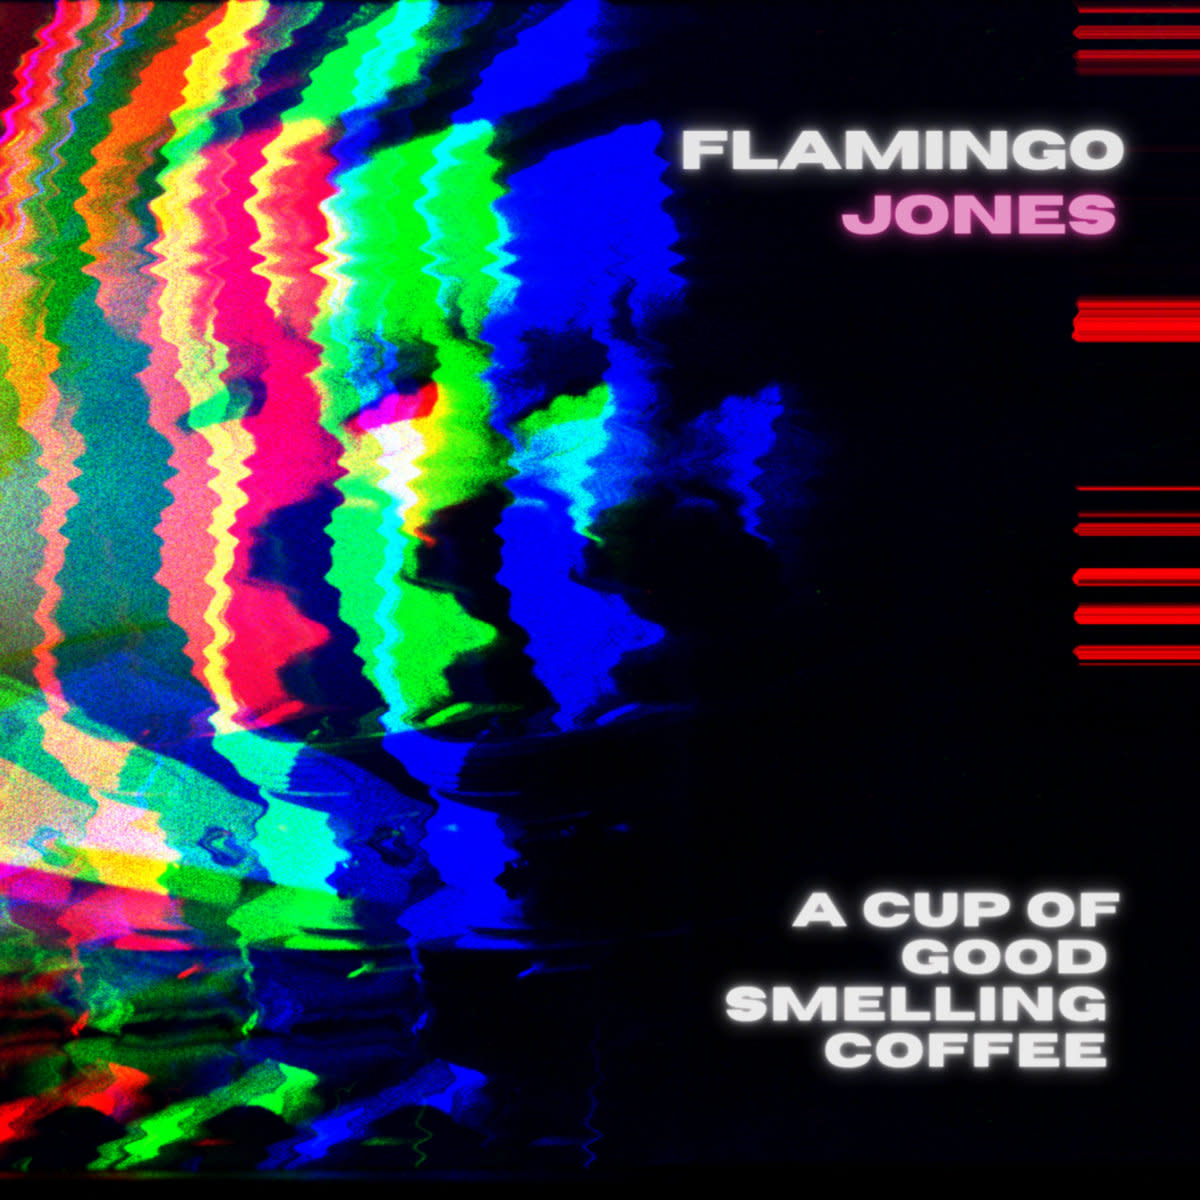 synth-album-review-a-cup-of-good-smelling-coffee-by-flamingo-jones